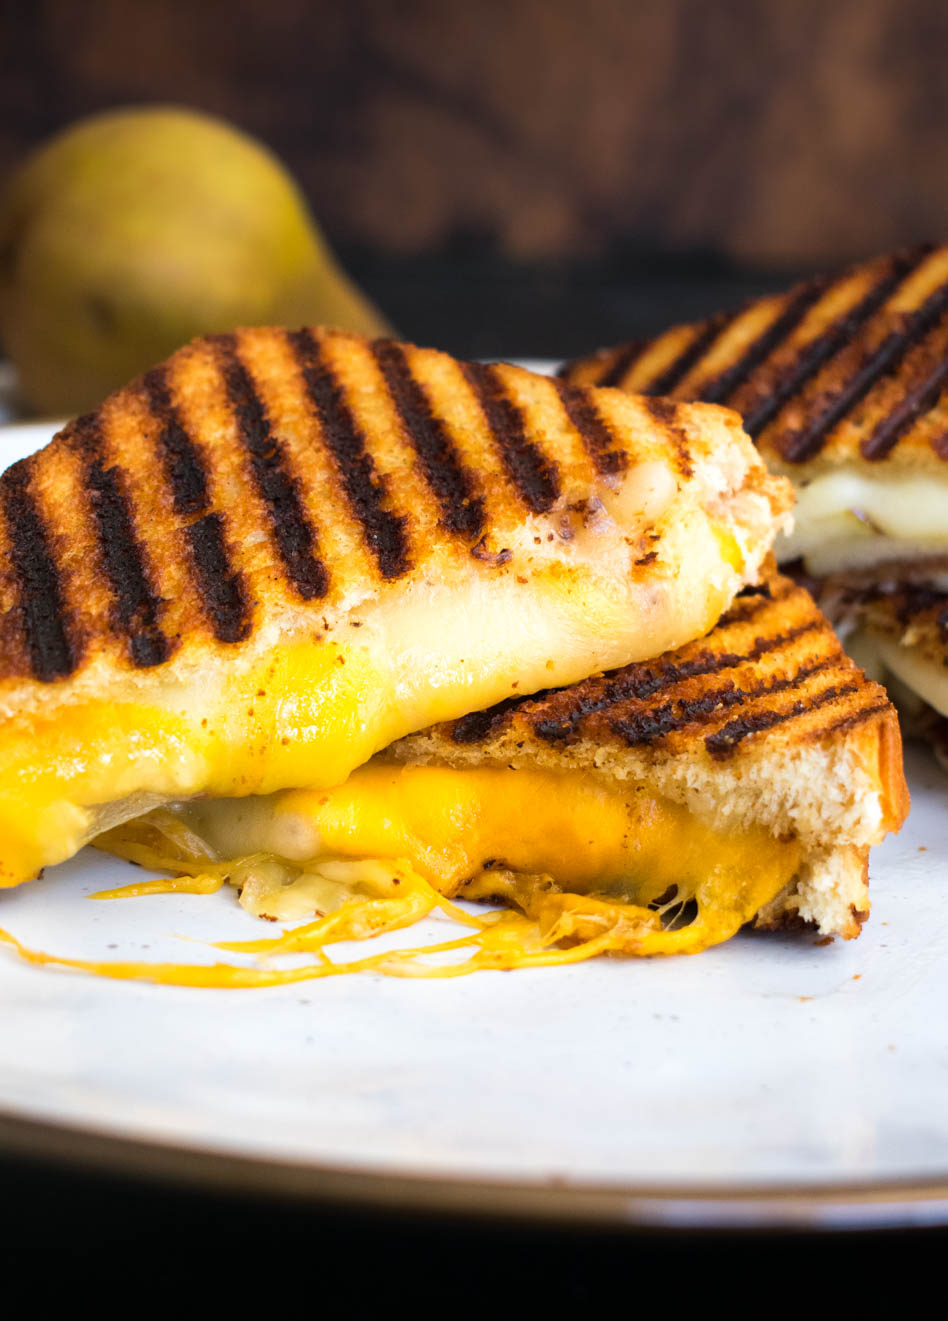 Grilled cheese de tres quesos